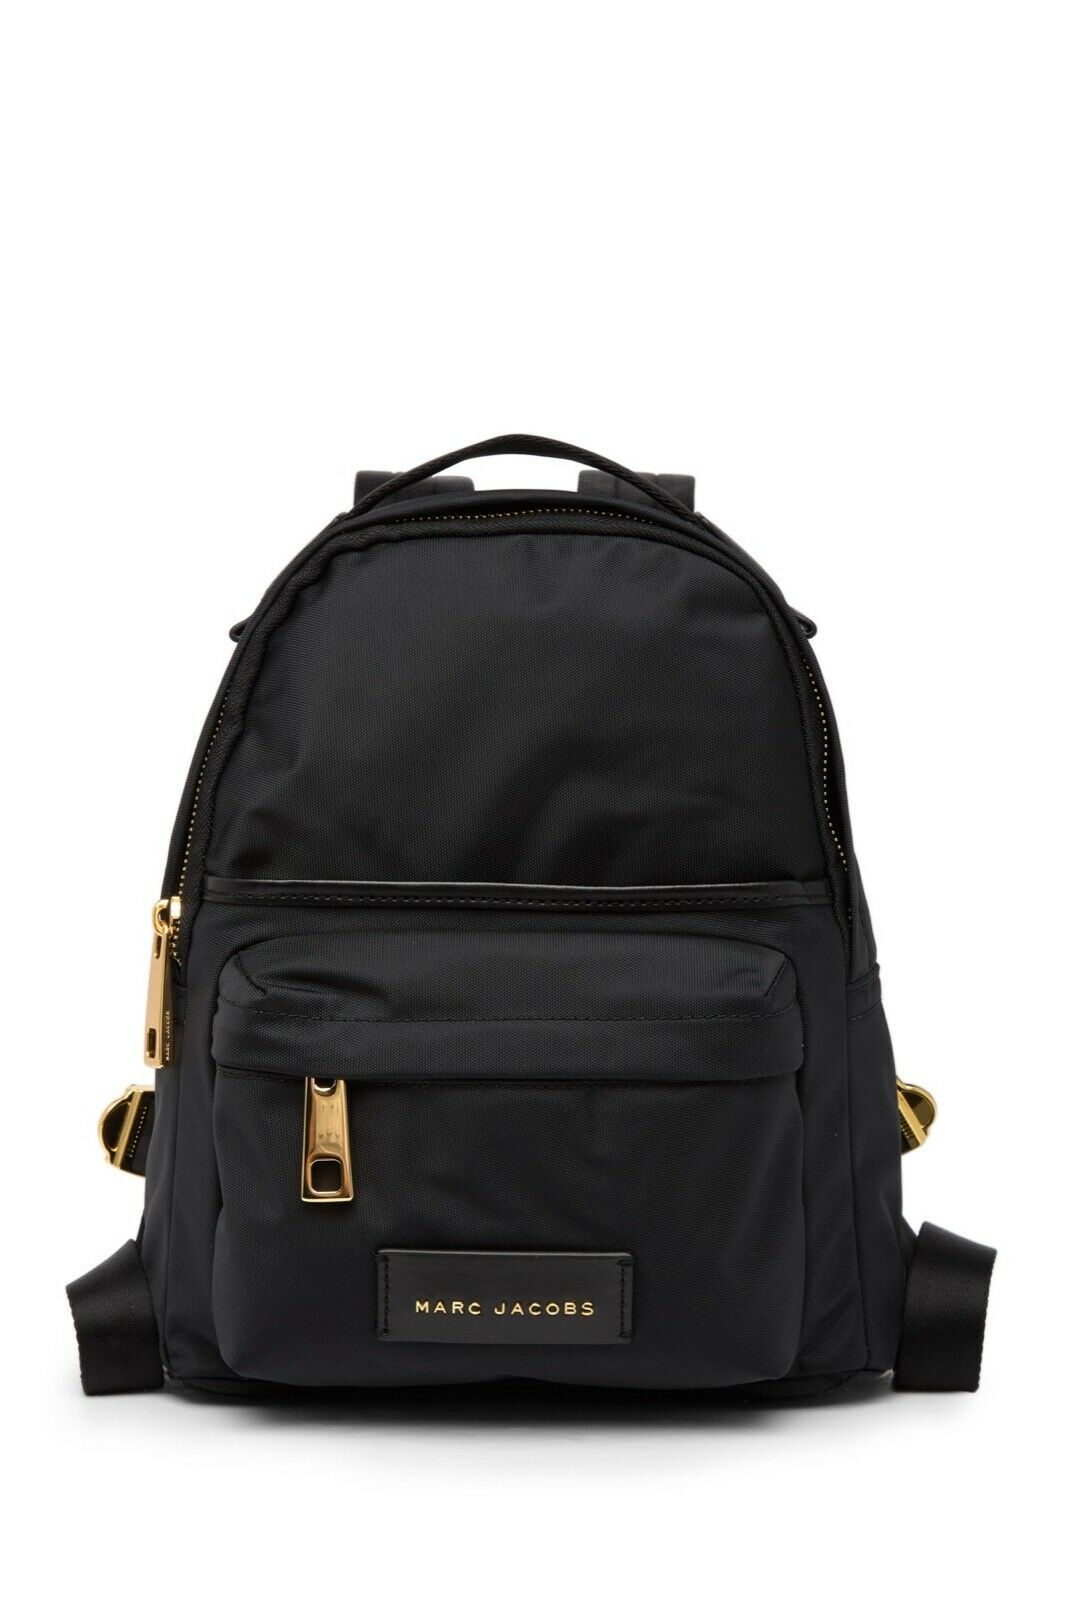 Marc Jacobs Mini Varsity Nylon Backpack (Black) - $198.00